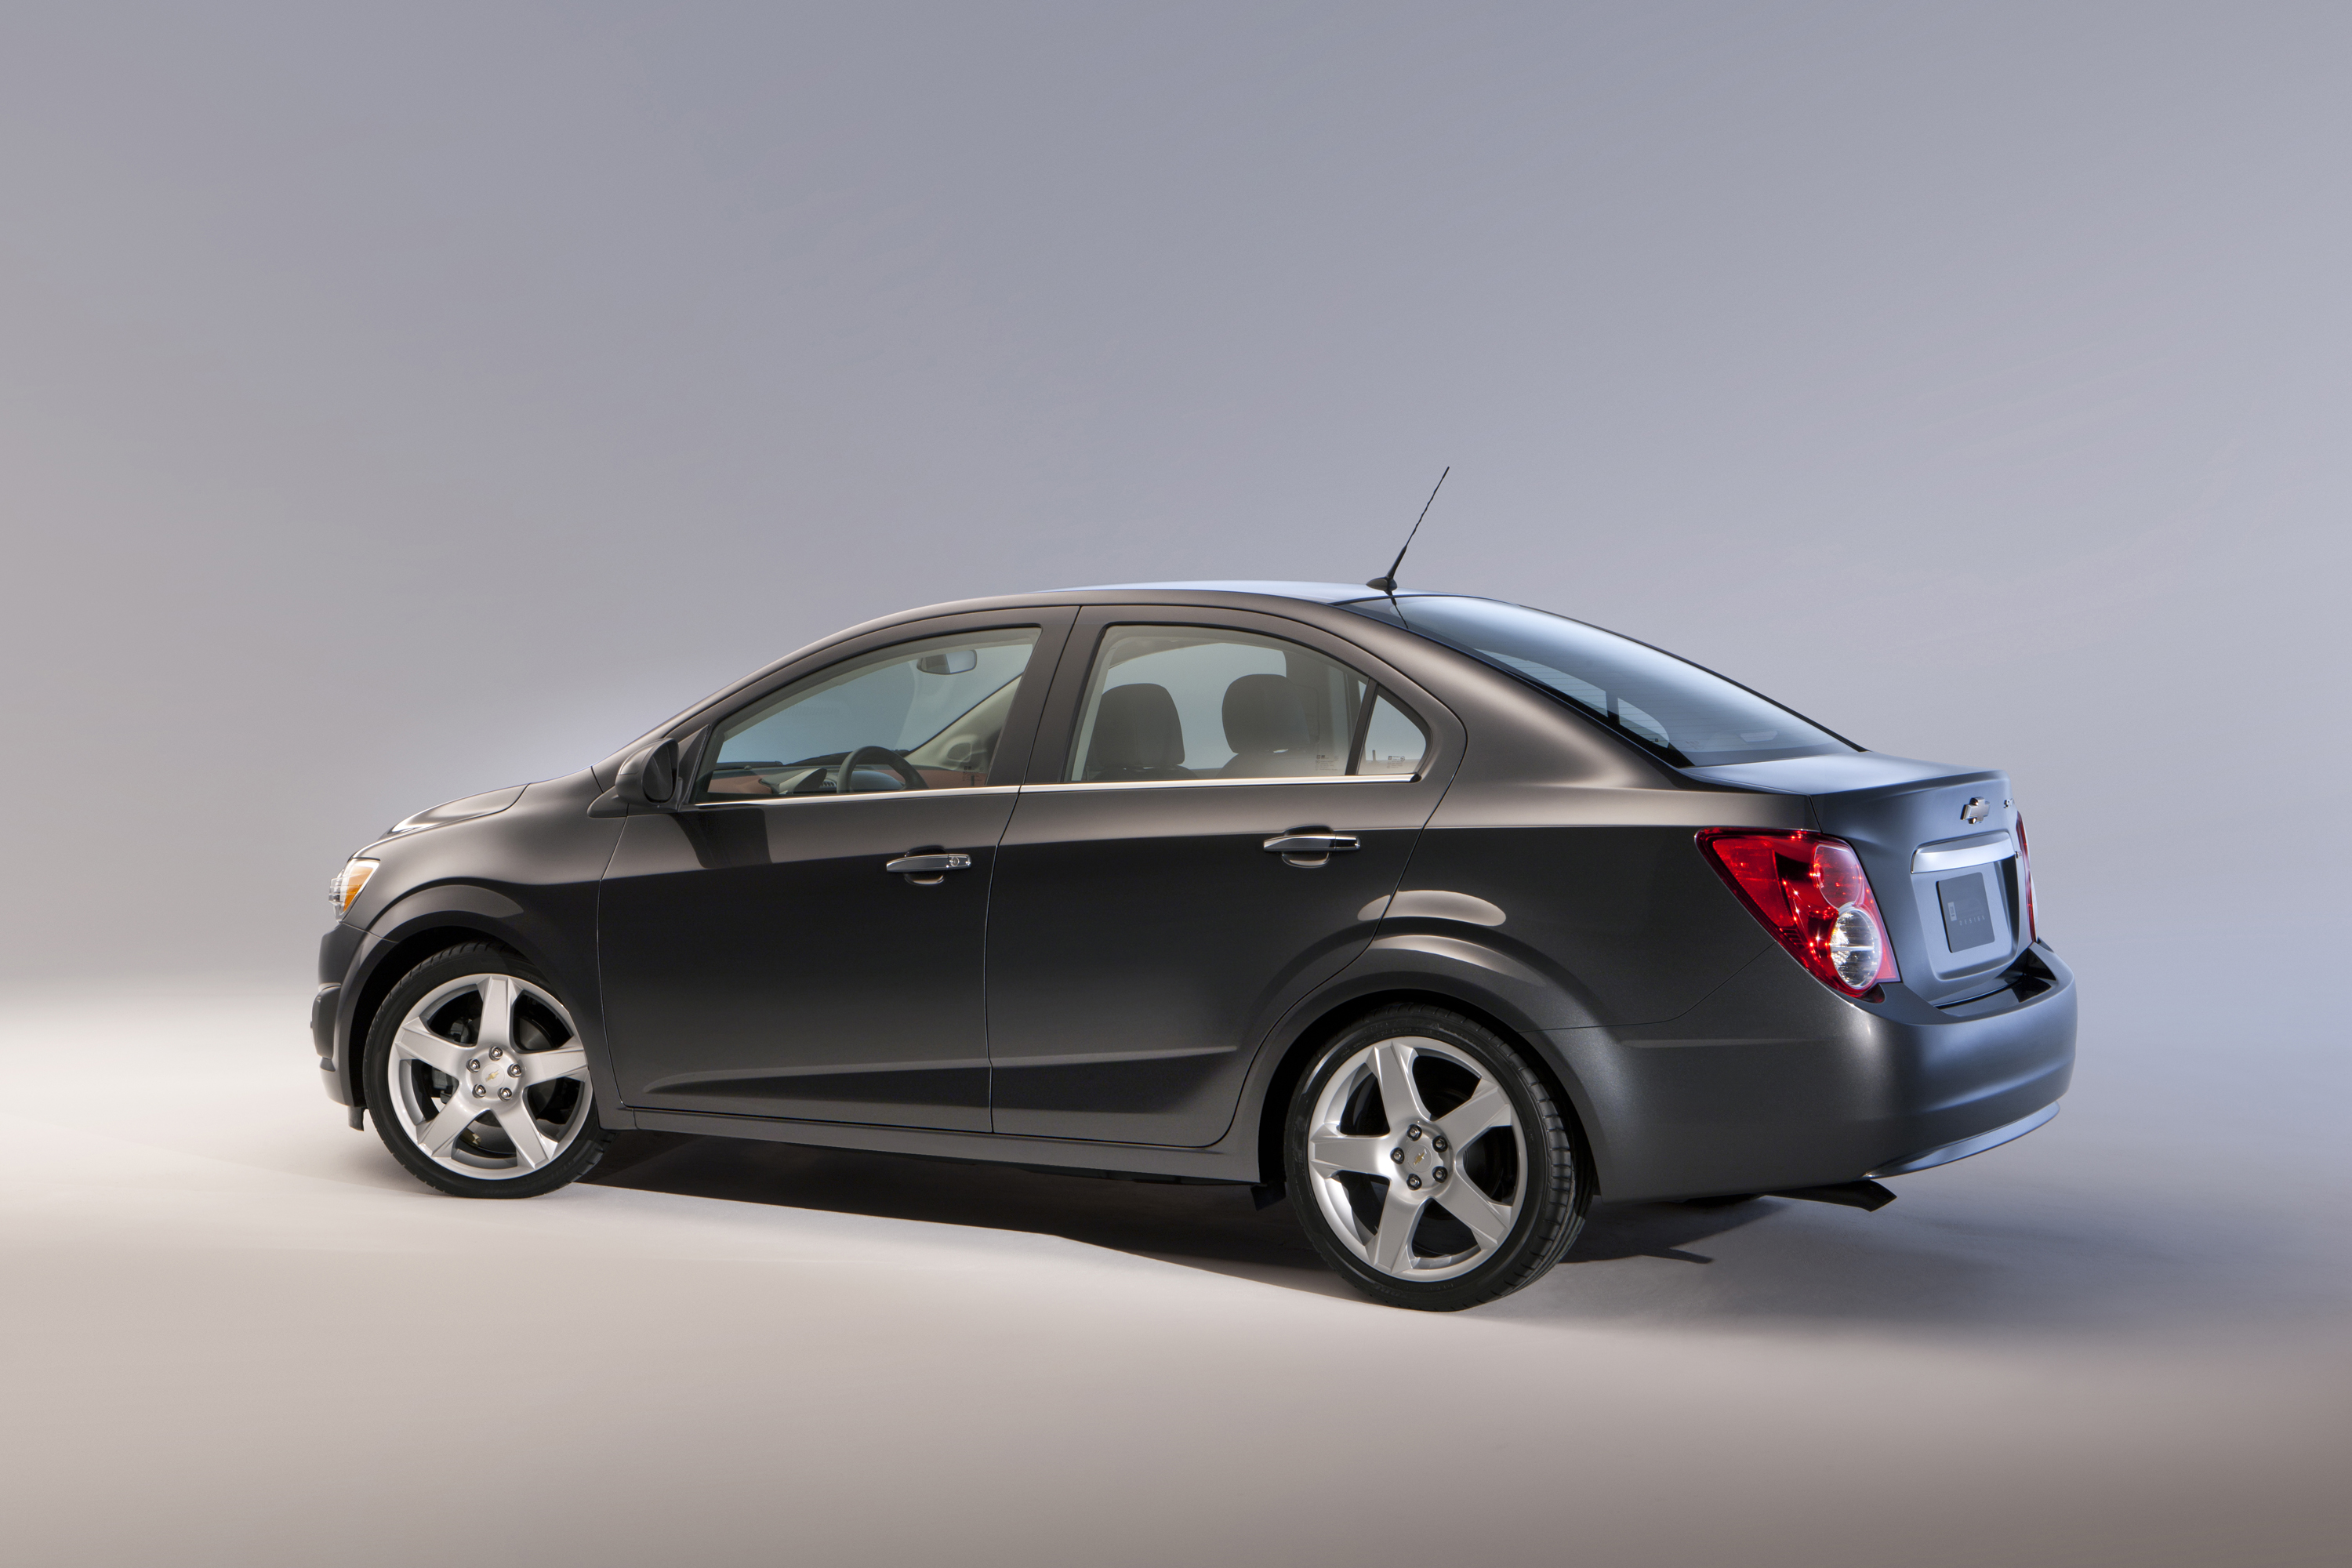 12-Sonic-Sedan-007 Great Description About 2011 Chevy Aveo Recalls with Captivating Images Cars Review